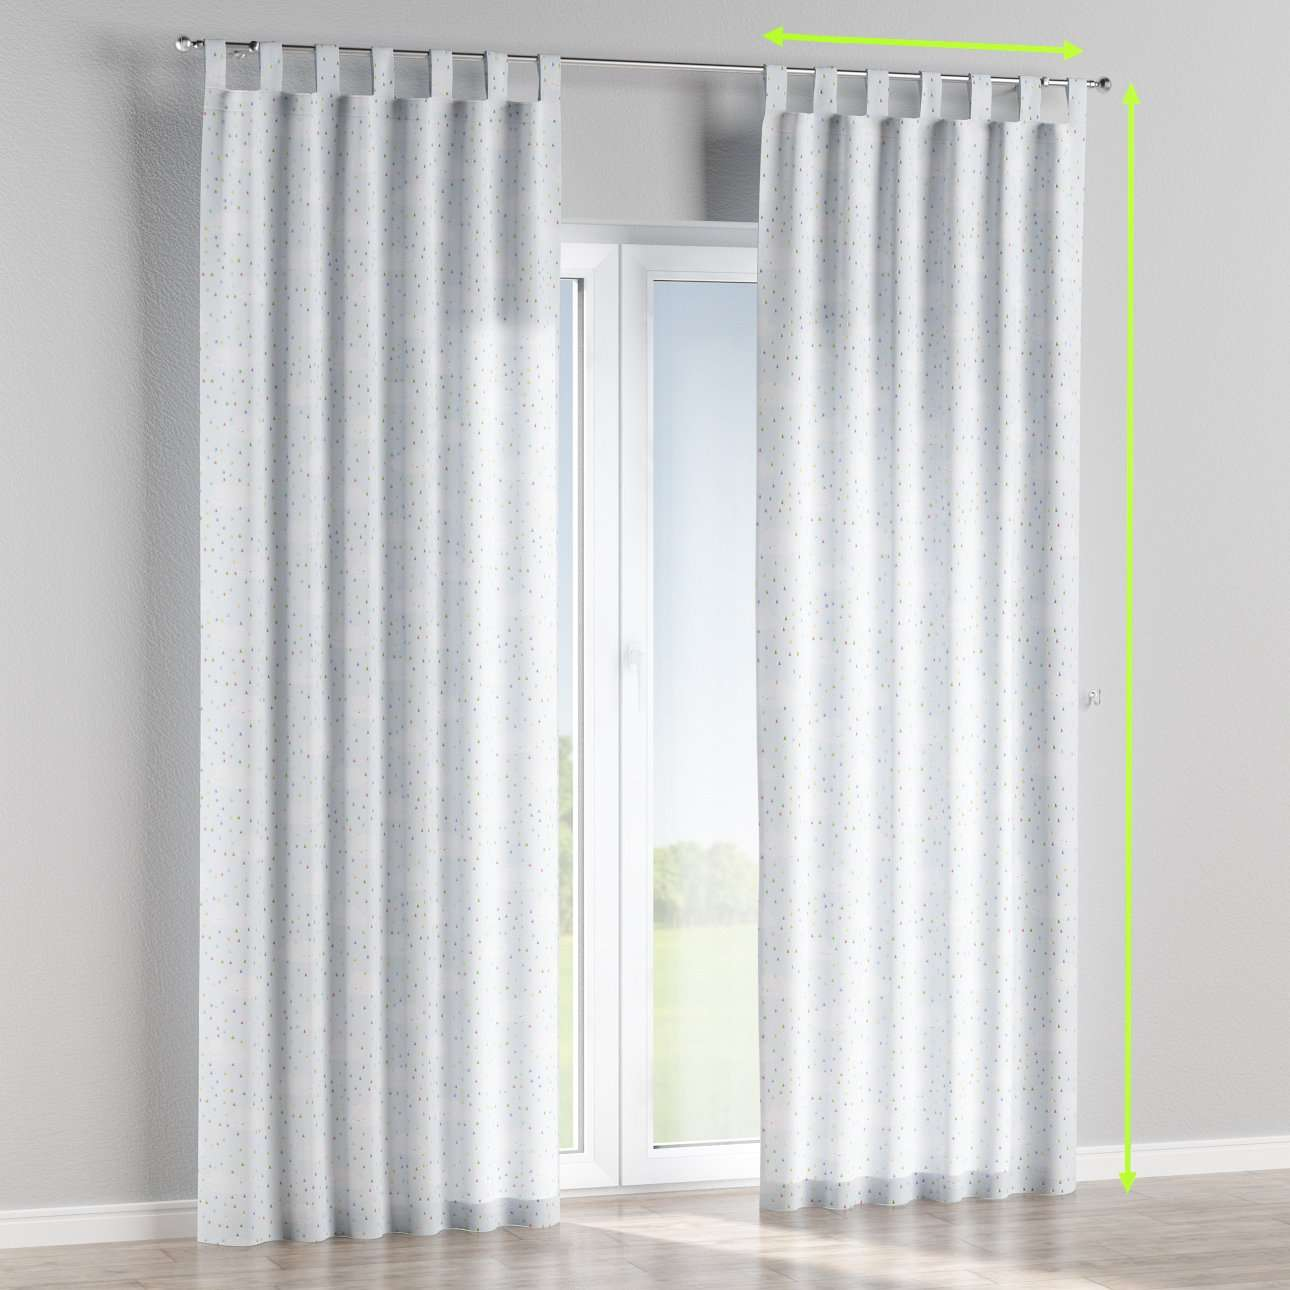 Tab top lined curtains in collection Apanona, fabric: 151-03